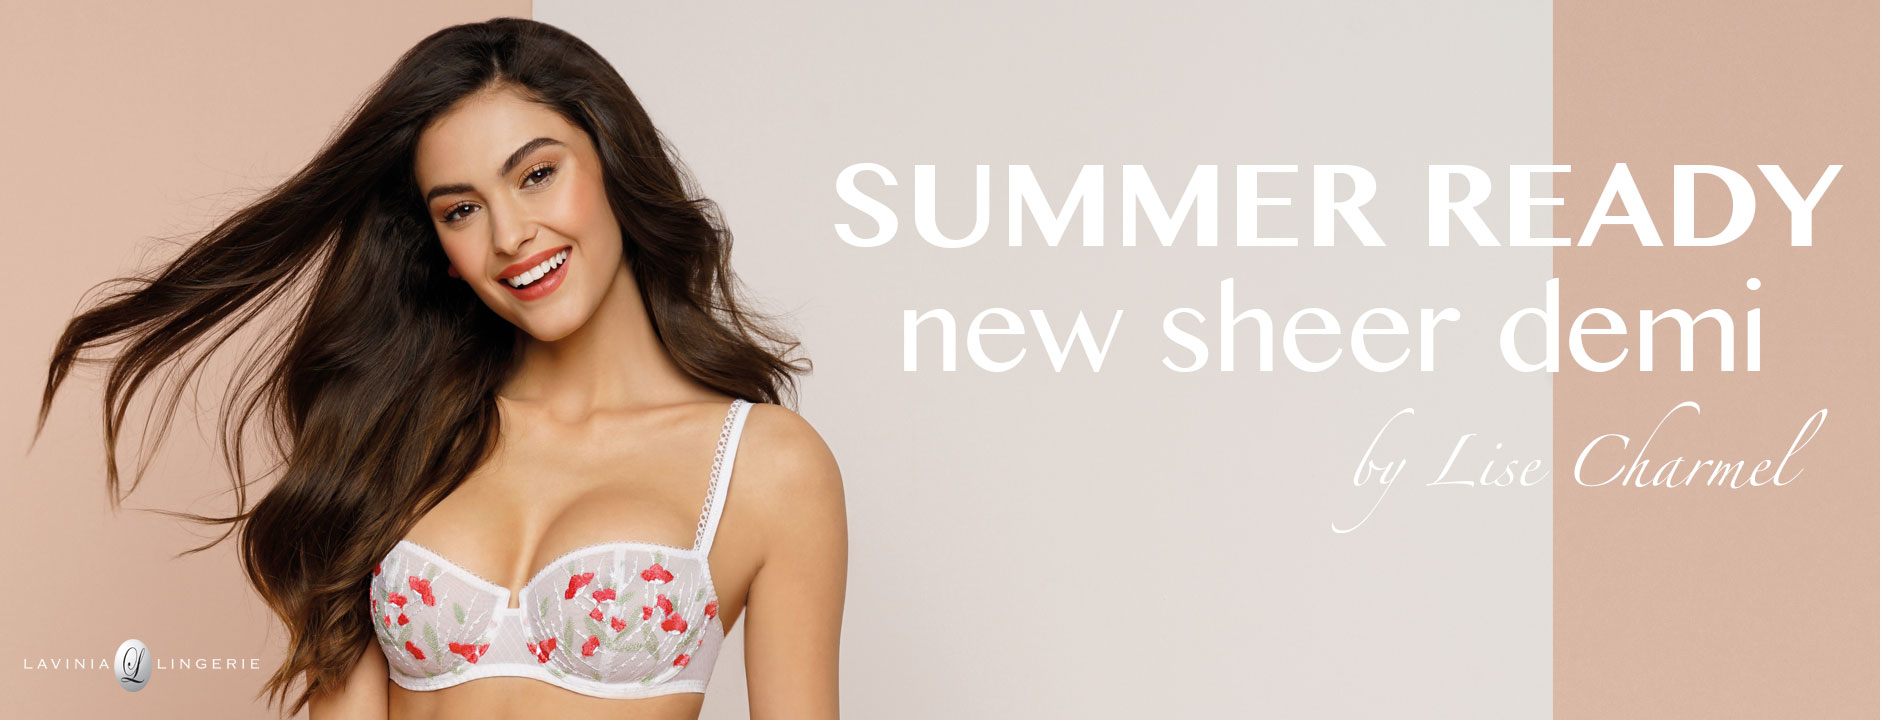 NEW IN: Summer Ready Lingerie Collections At Lavinia Lingerie Store